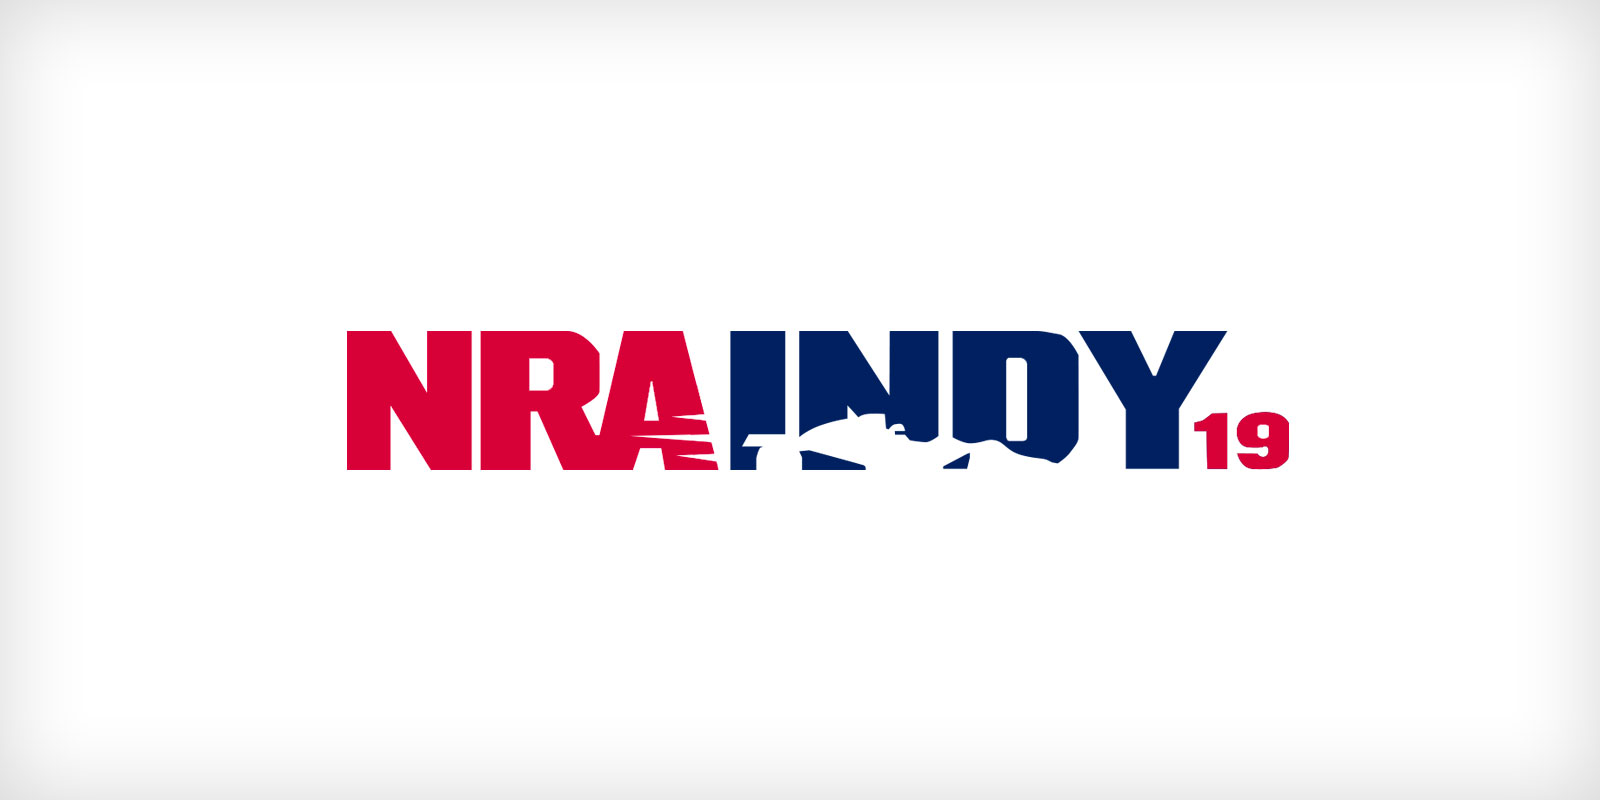 NRA Indy 19